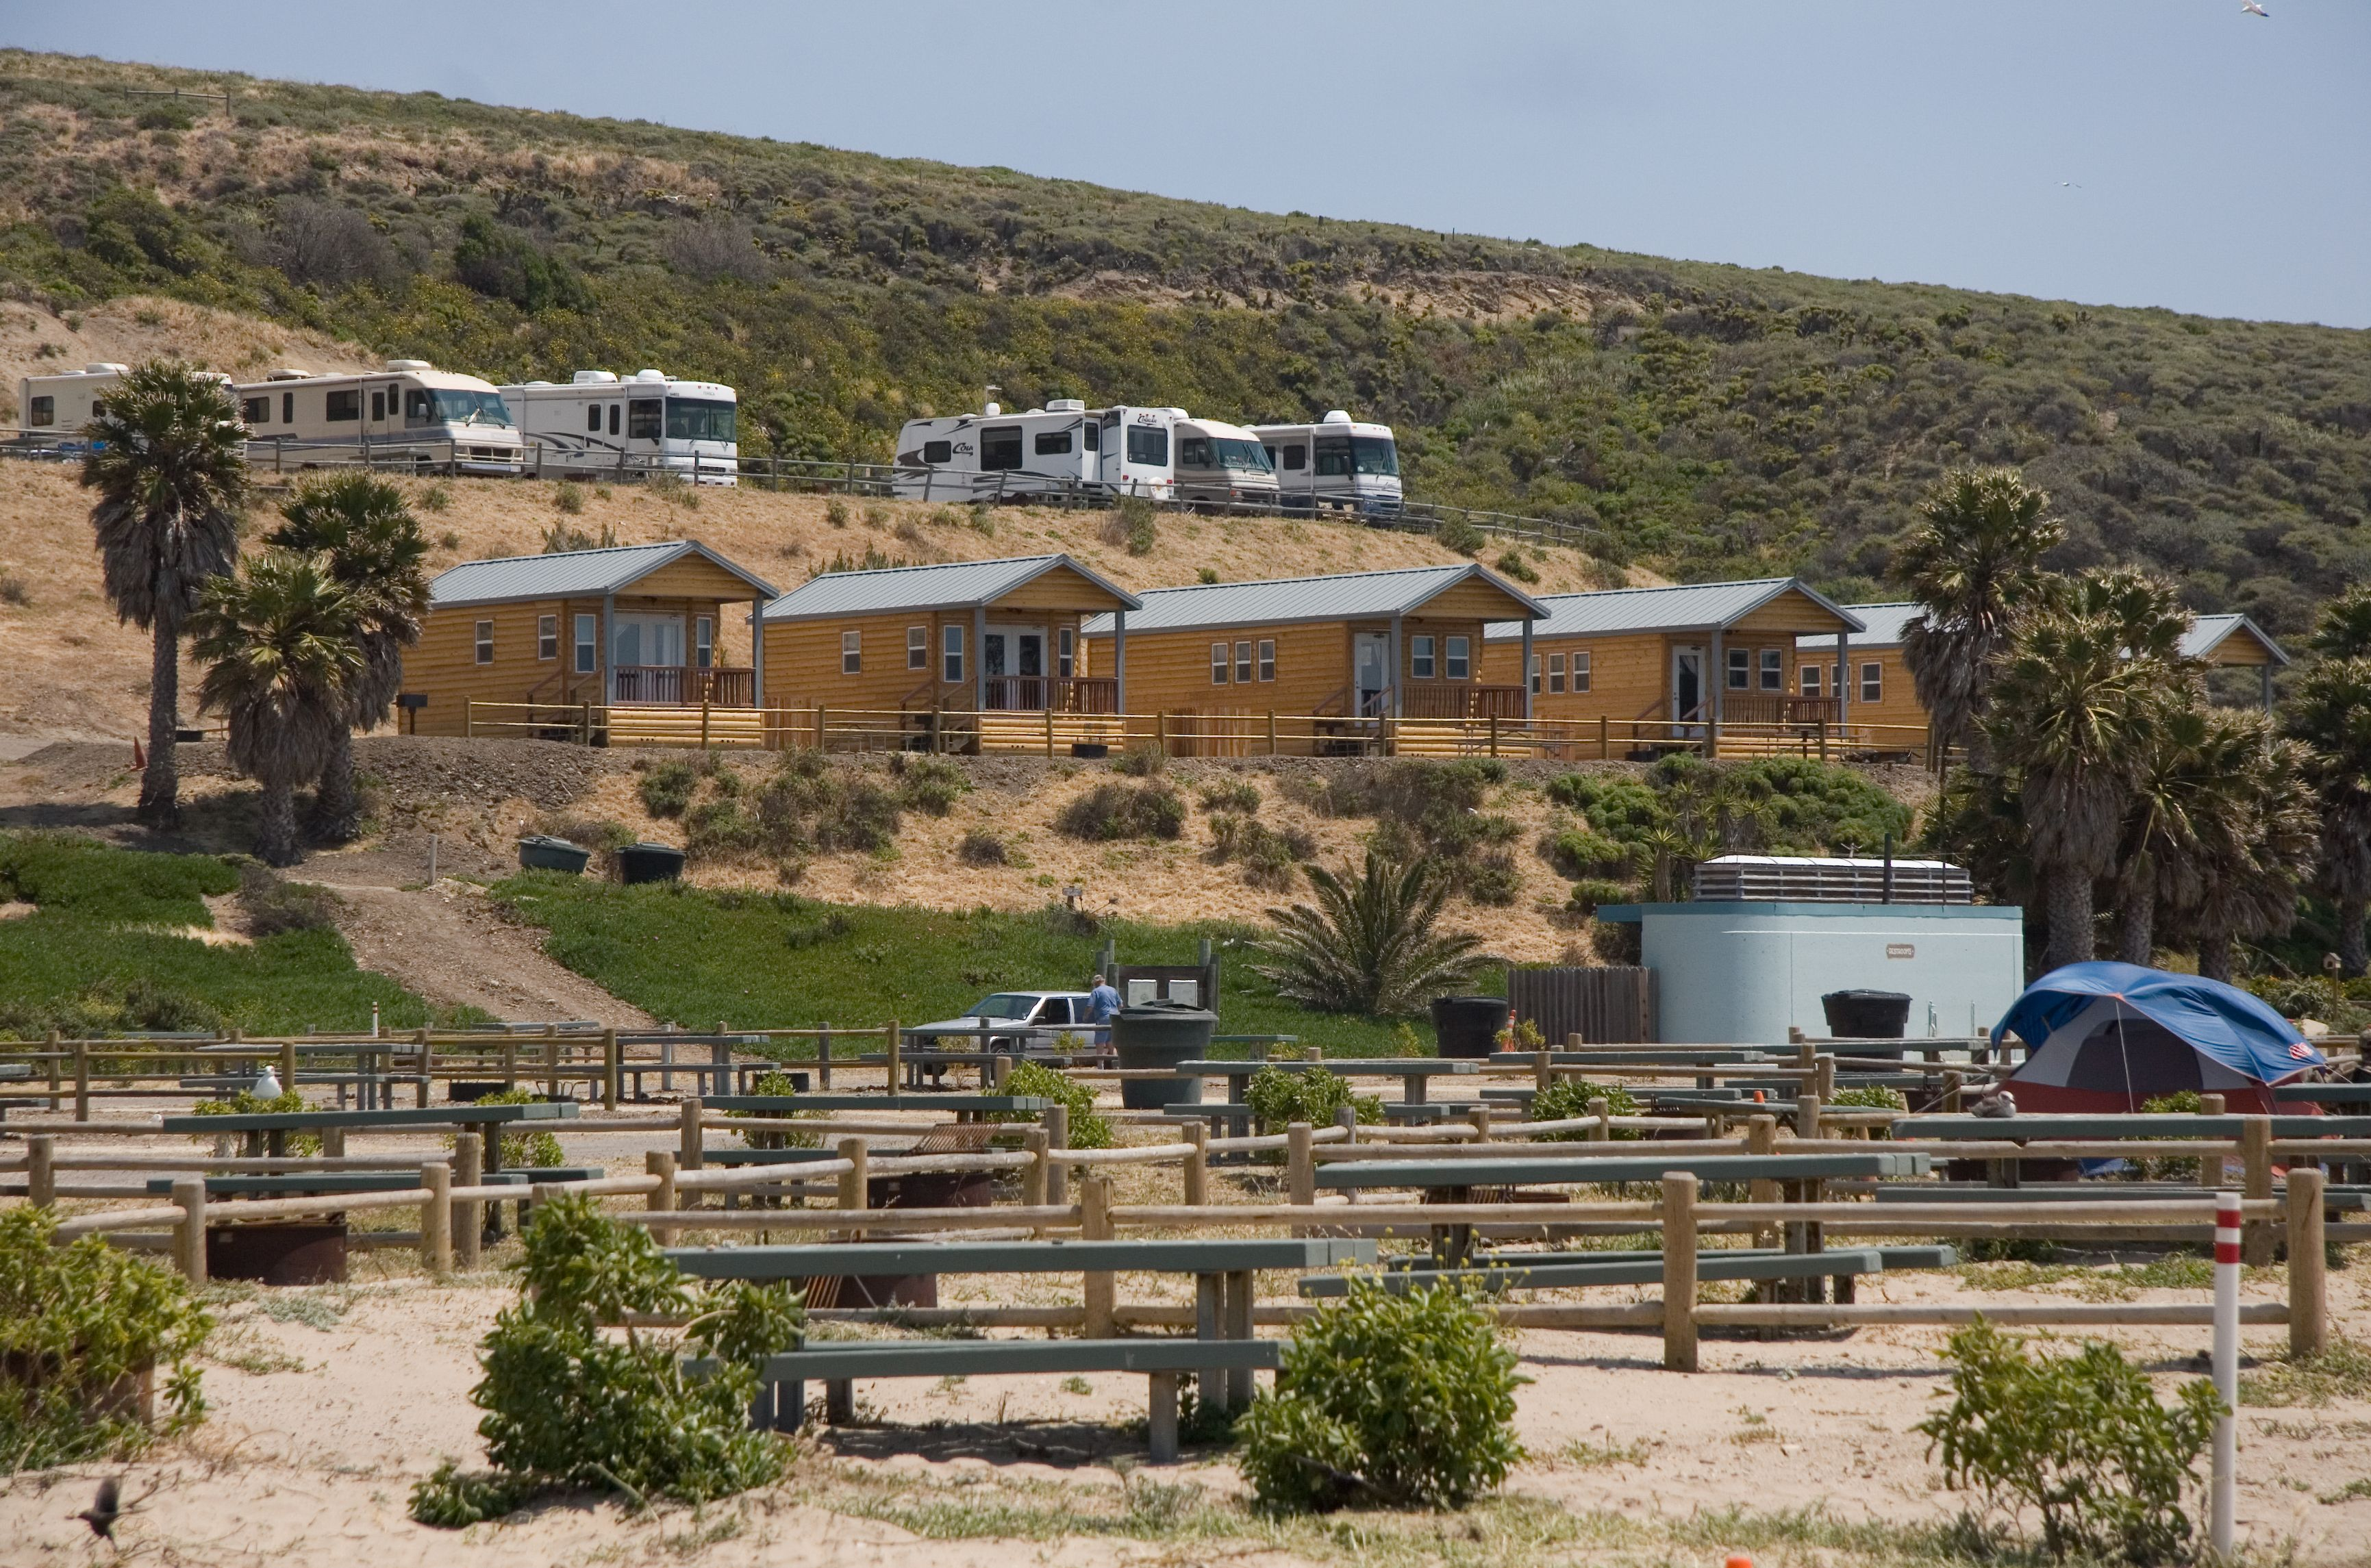 Jalama Beach, CA  Santa Barbara County Parks Department Leases These 7  Beautiful Cabins With